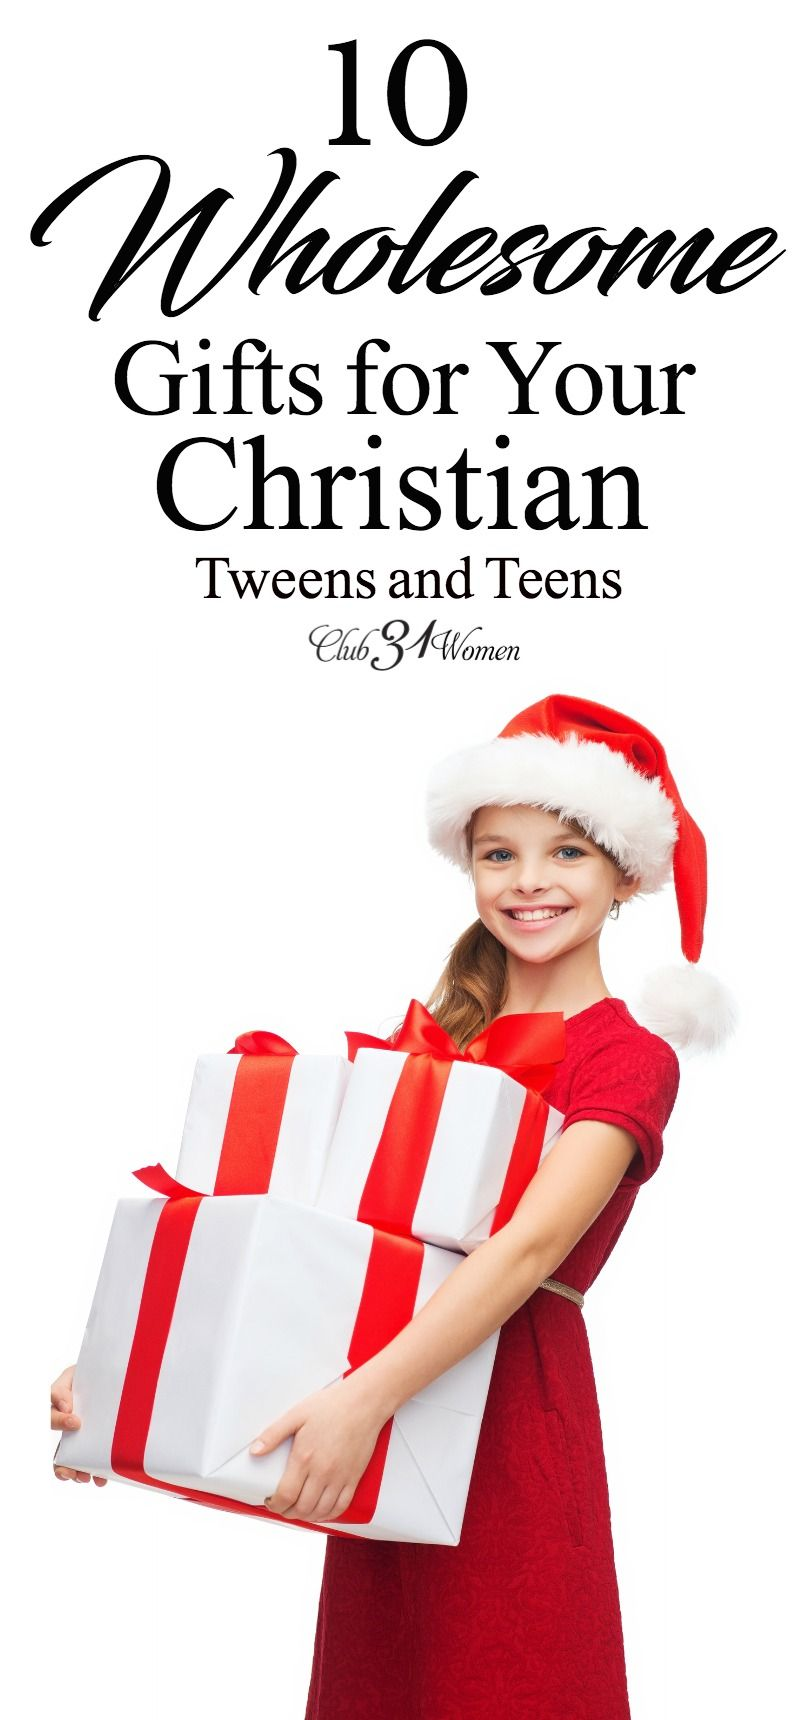 10 Wholesome Gifts for Your Christian Tweens and Teens | Gift ...